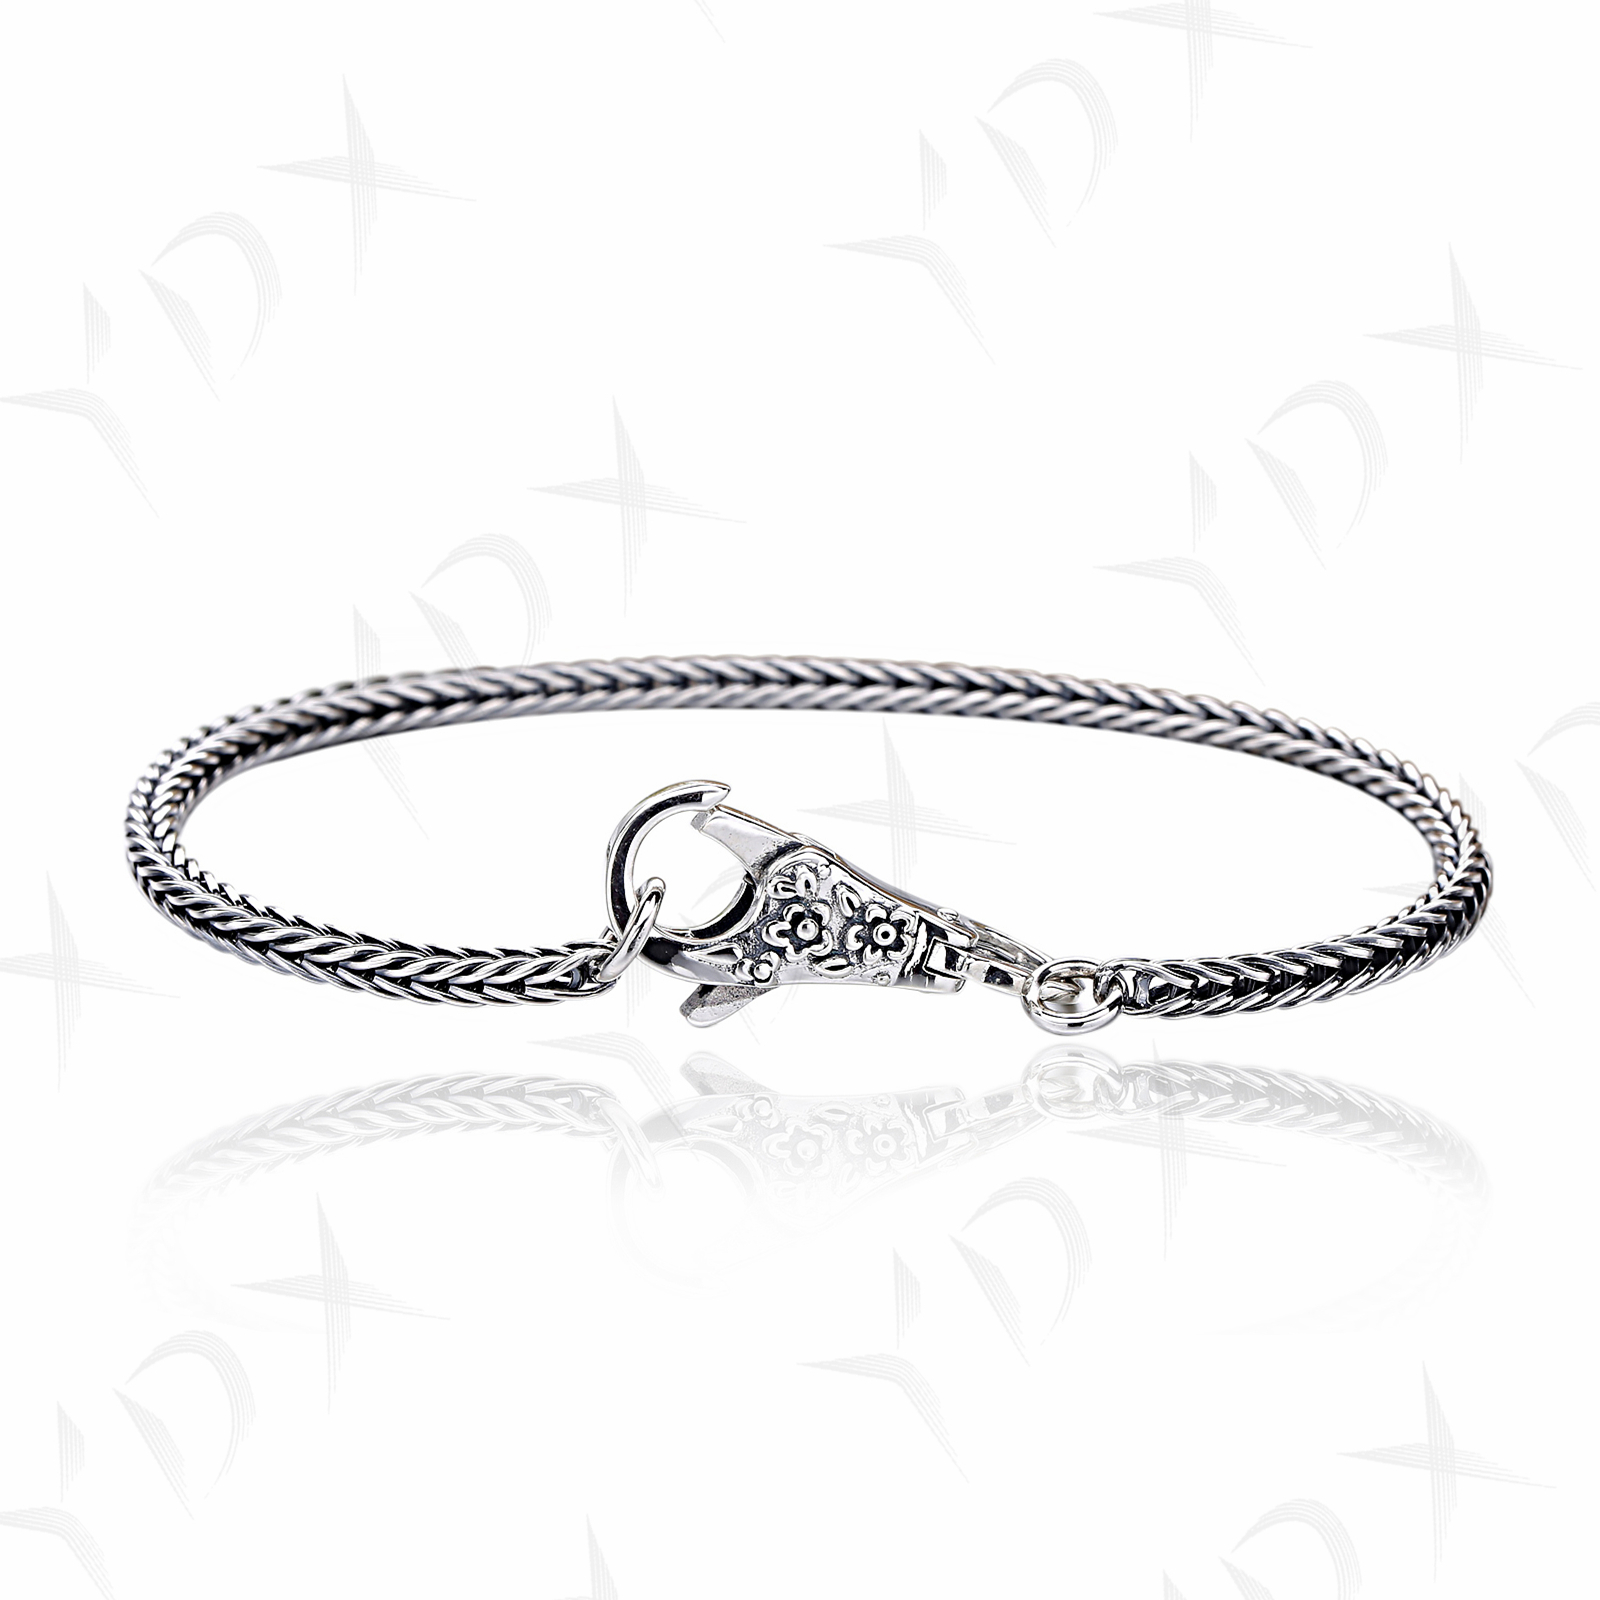 YDX 100% 925 Sterling Silver Couple Bracelet Retro Lobster Buckle Bracelet Suitable For Charm Beaded Party Gift